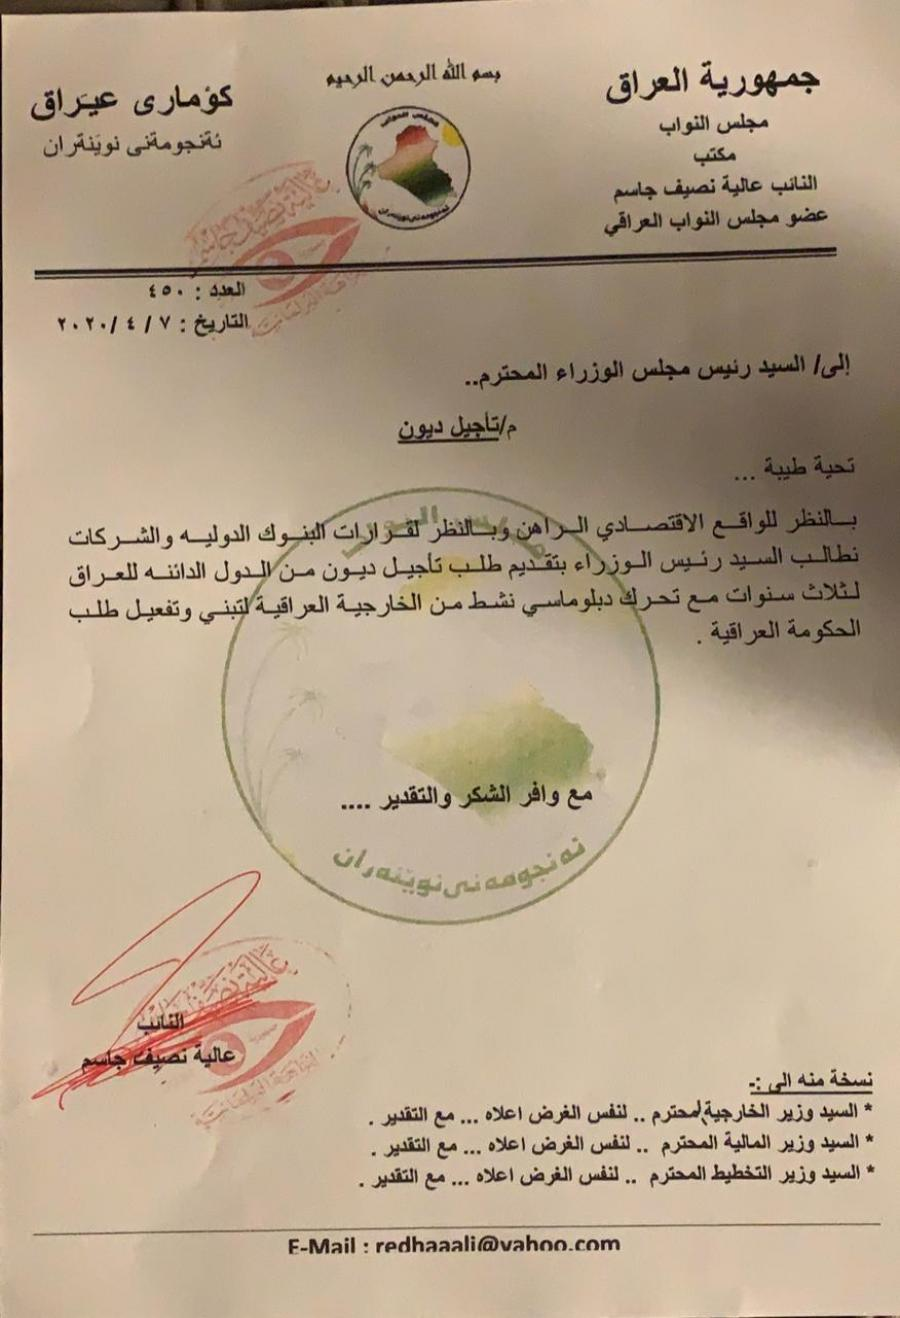 In the document .. Representative asked to postpone the payment of the debts owed by Iraq for three years Image